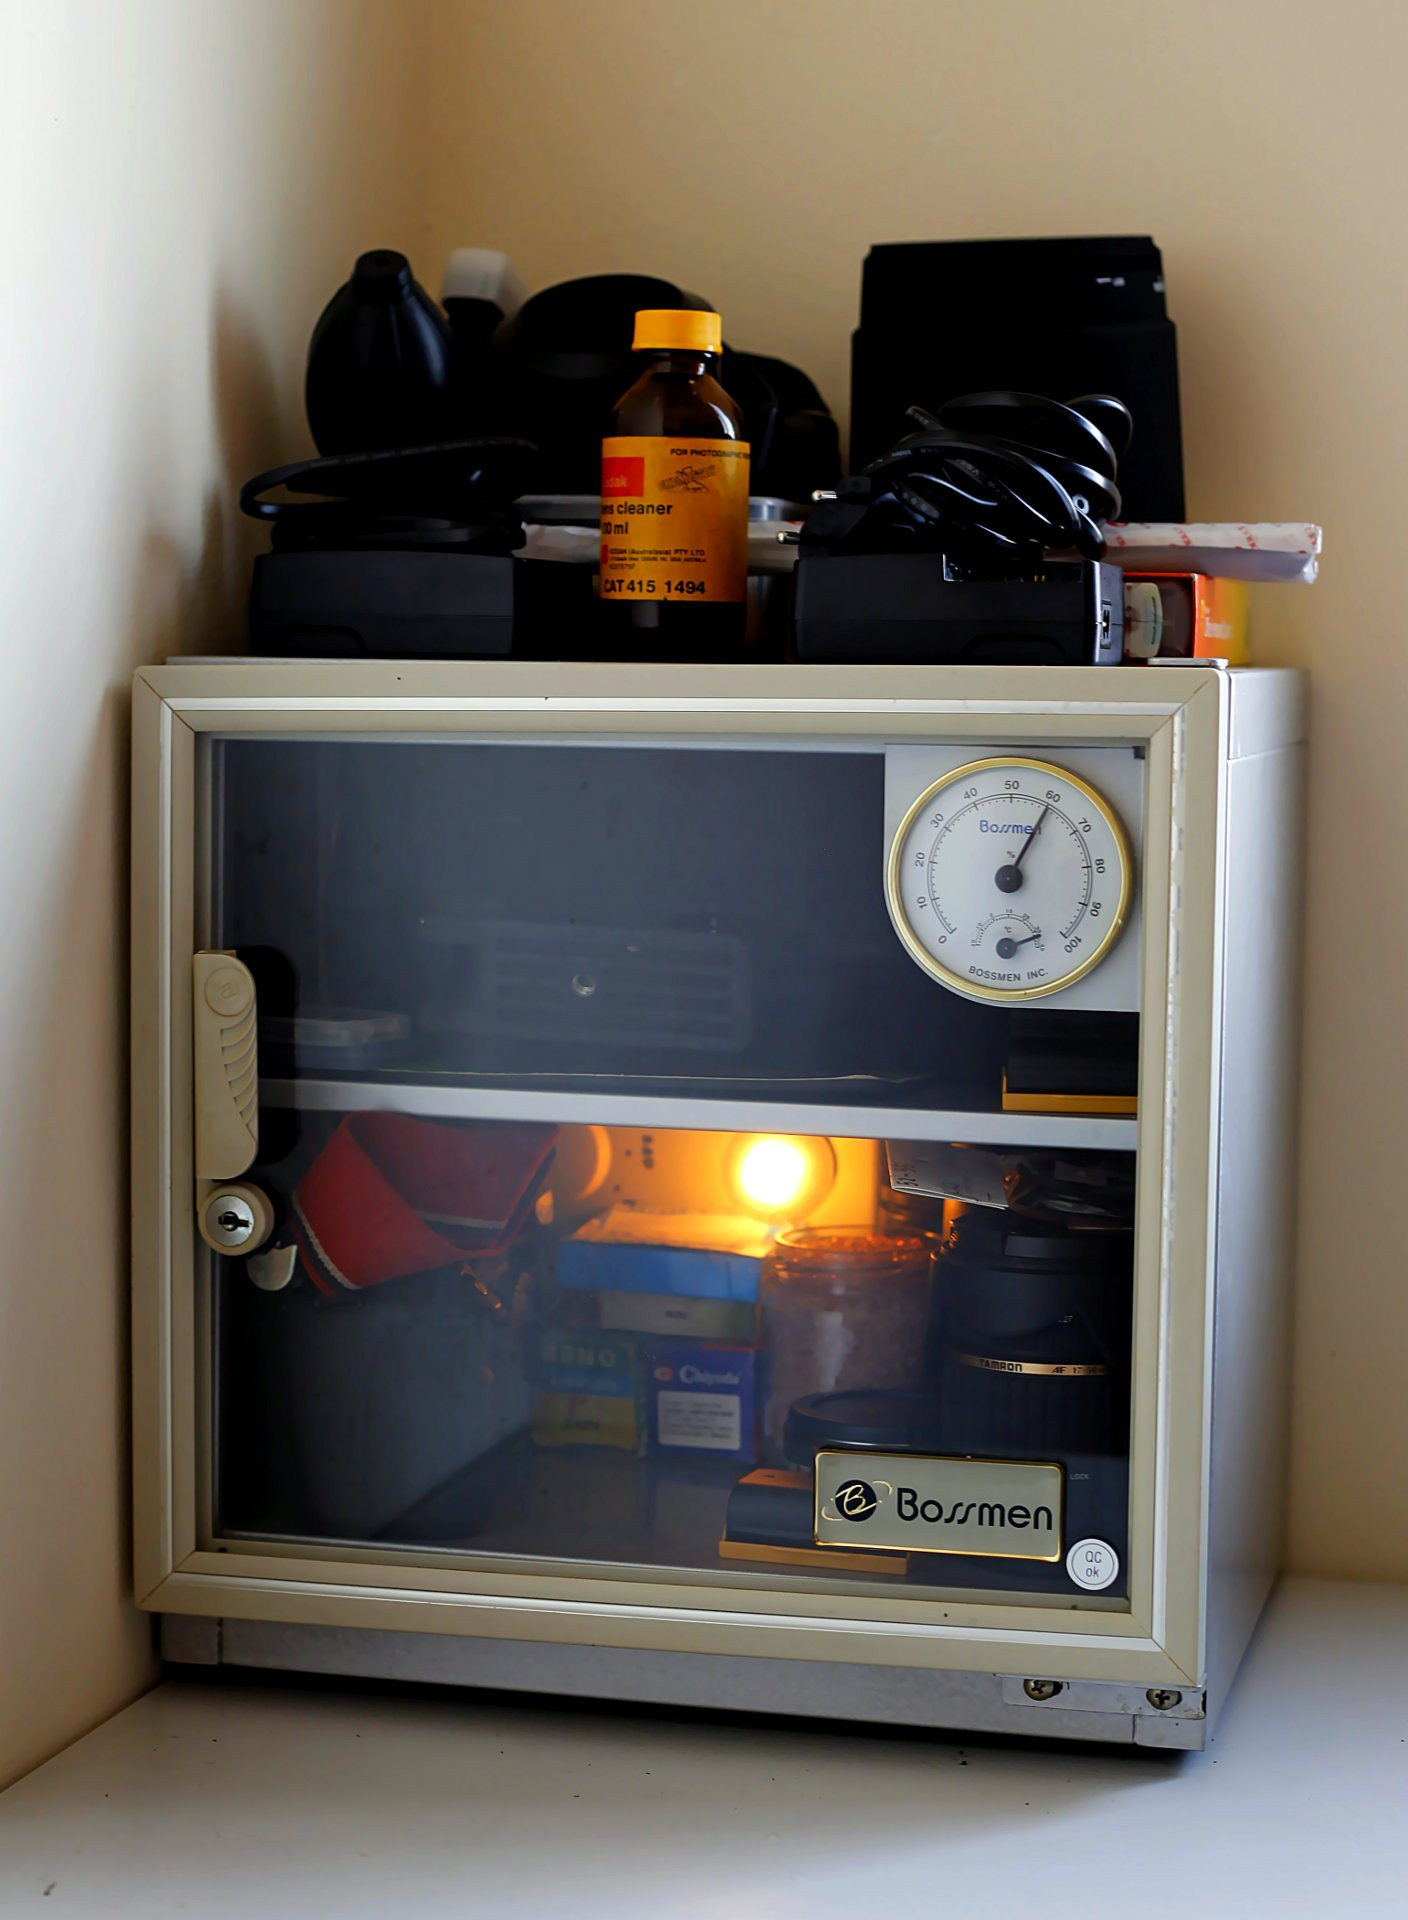 Best ideas about DIY Dry Box . Save or Pin Simple DIY Dehumidifier Dry Box Now.